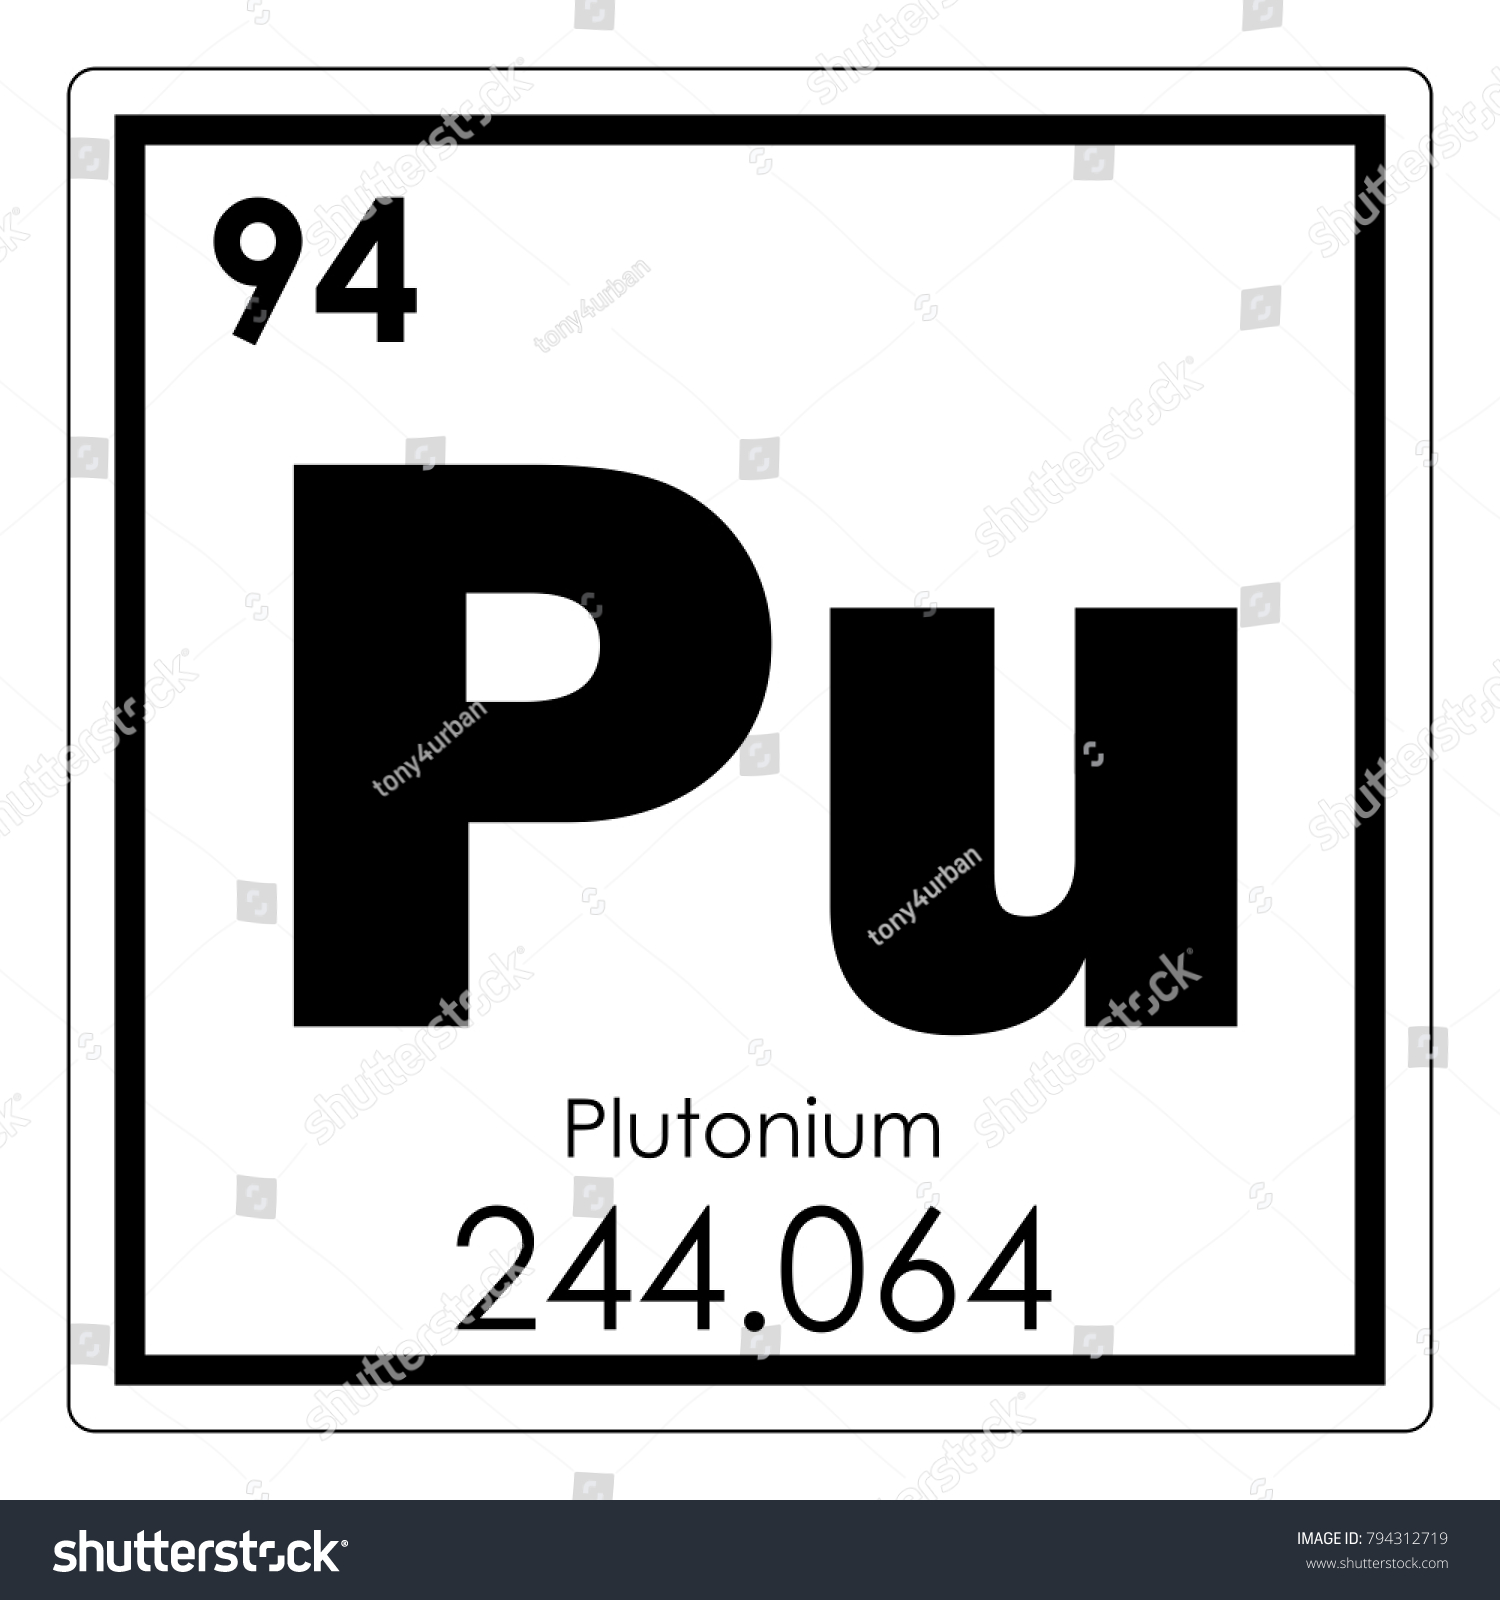 What is chemical symbol for iron choice image symbol and sign ideas plutonium chemical element periodic table science stock plutonium chemical element periodic table science symbol buycottarizona buycottarizona